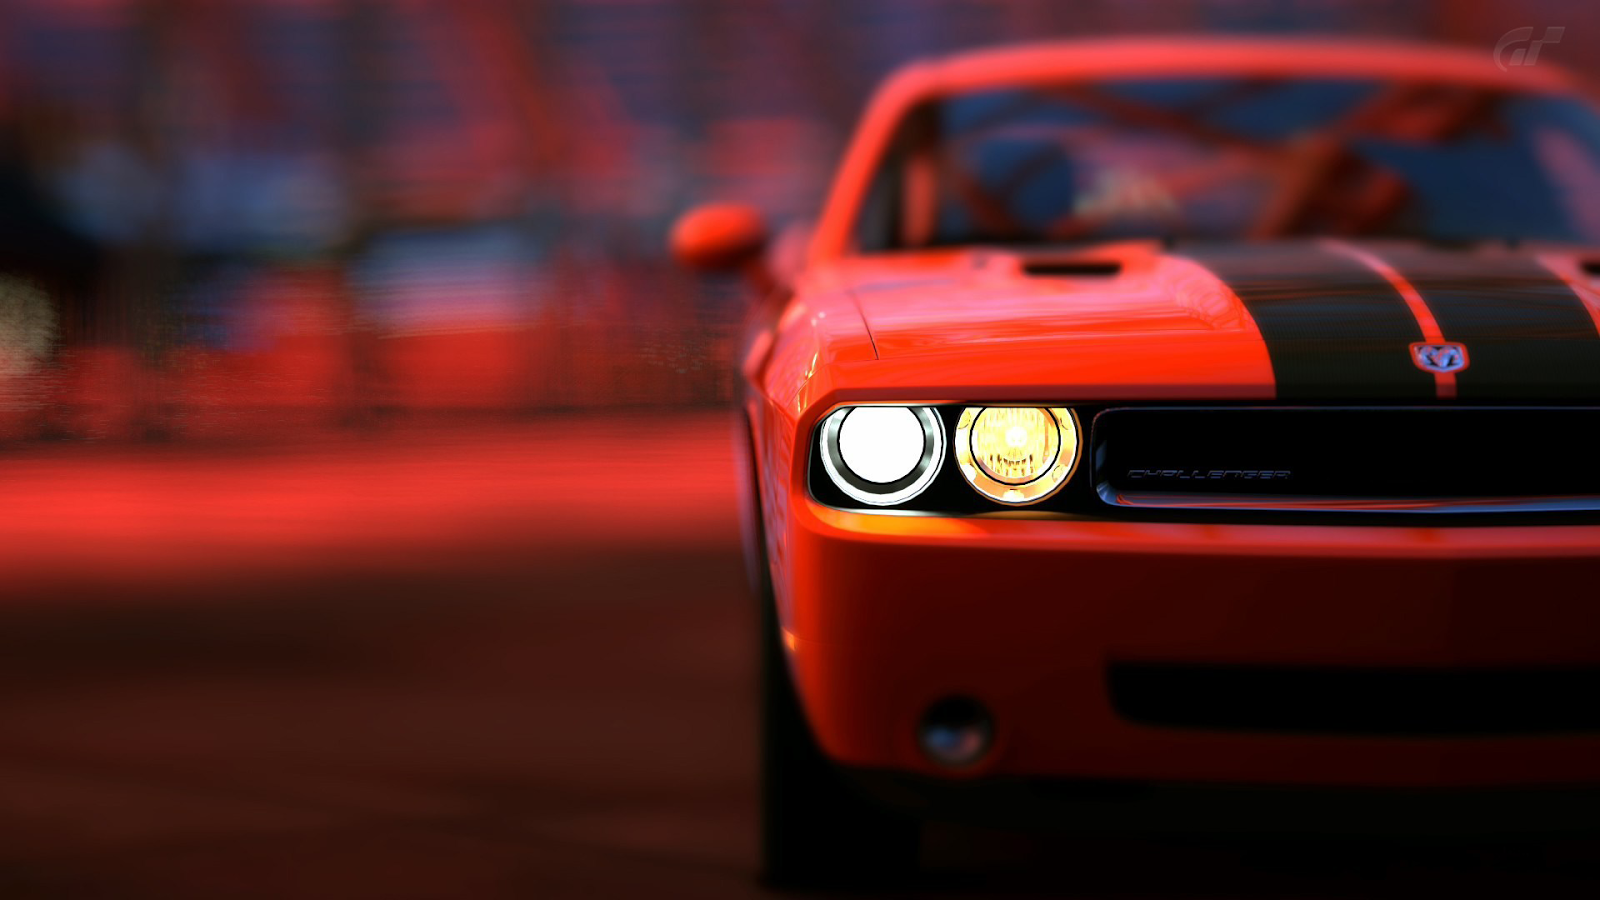 Dodge Challenger STR8 Car HD Desktop Wallpaper HD Desktop Wallpapers 1600x900